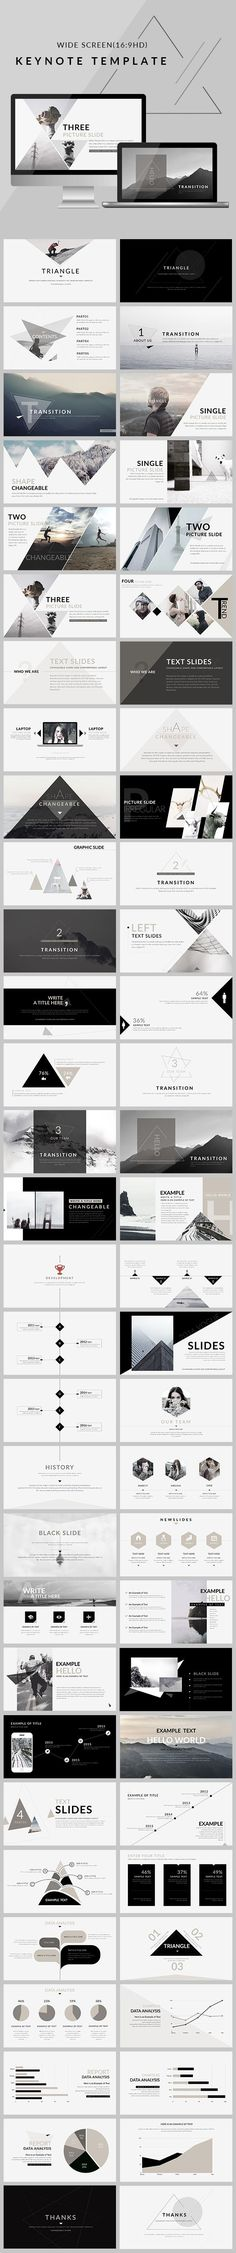 Triangle - Clean trend Keynote Template - Keynote Creative Presentation Template by Ppt Design, Layout Design, Visual Design, Design Sites, Logo Design, Design Agency, Creative Design, Webdesign Inspiration, Layout Inspiration